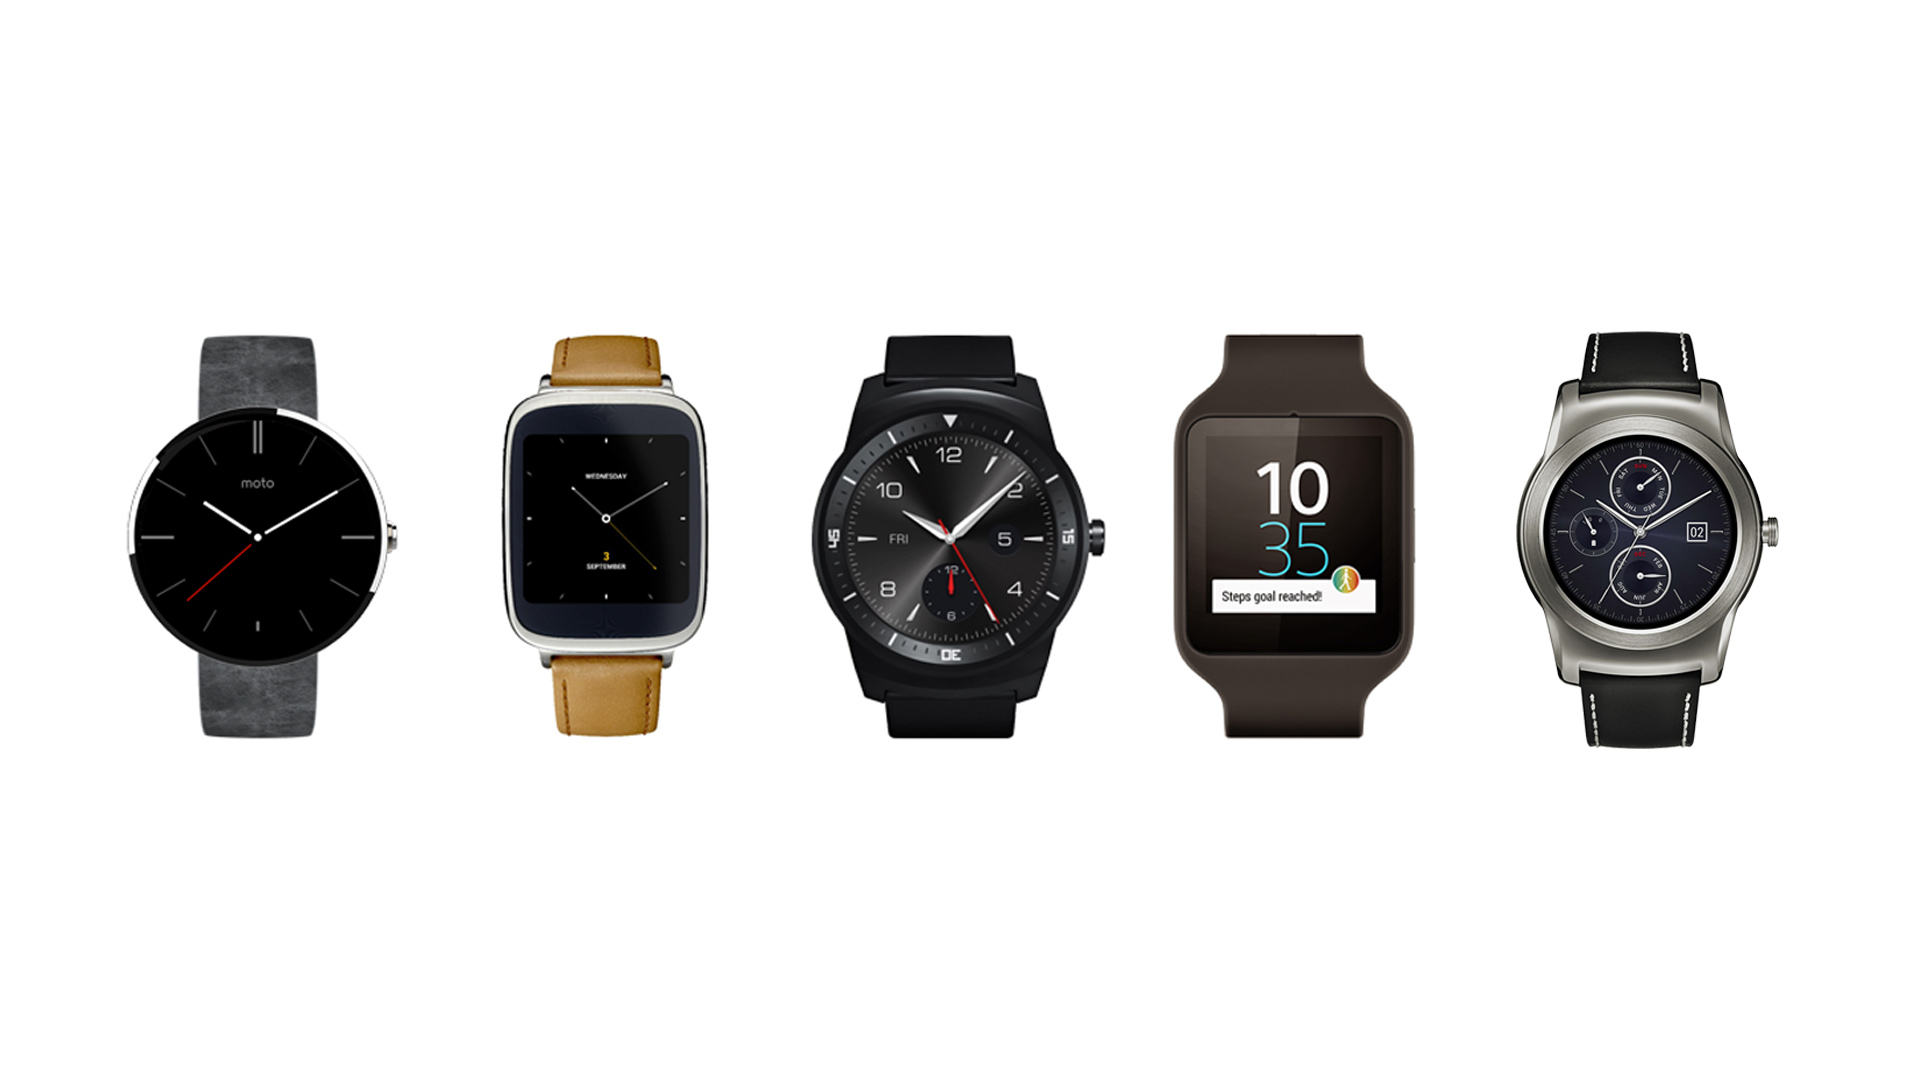 montre android wear femme